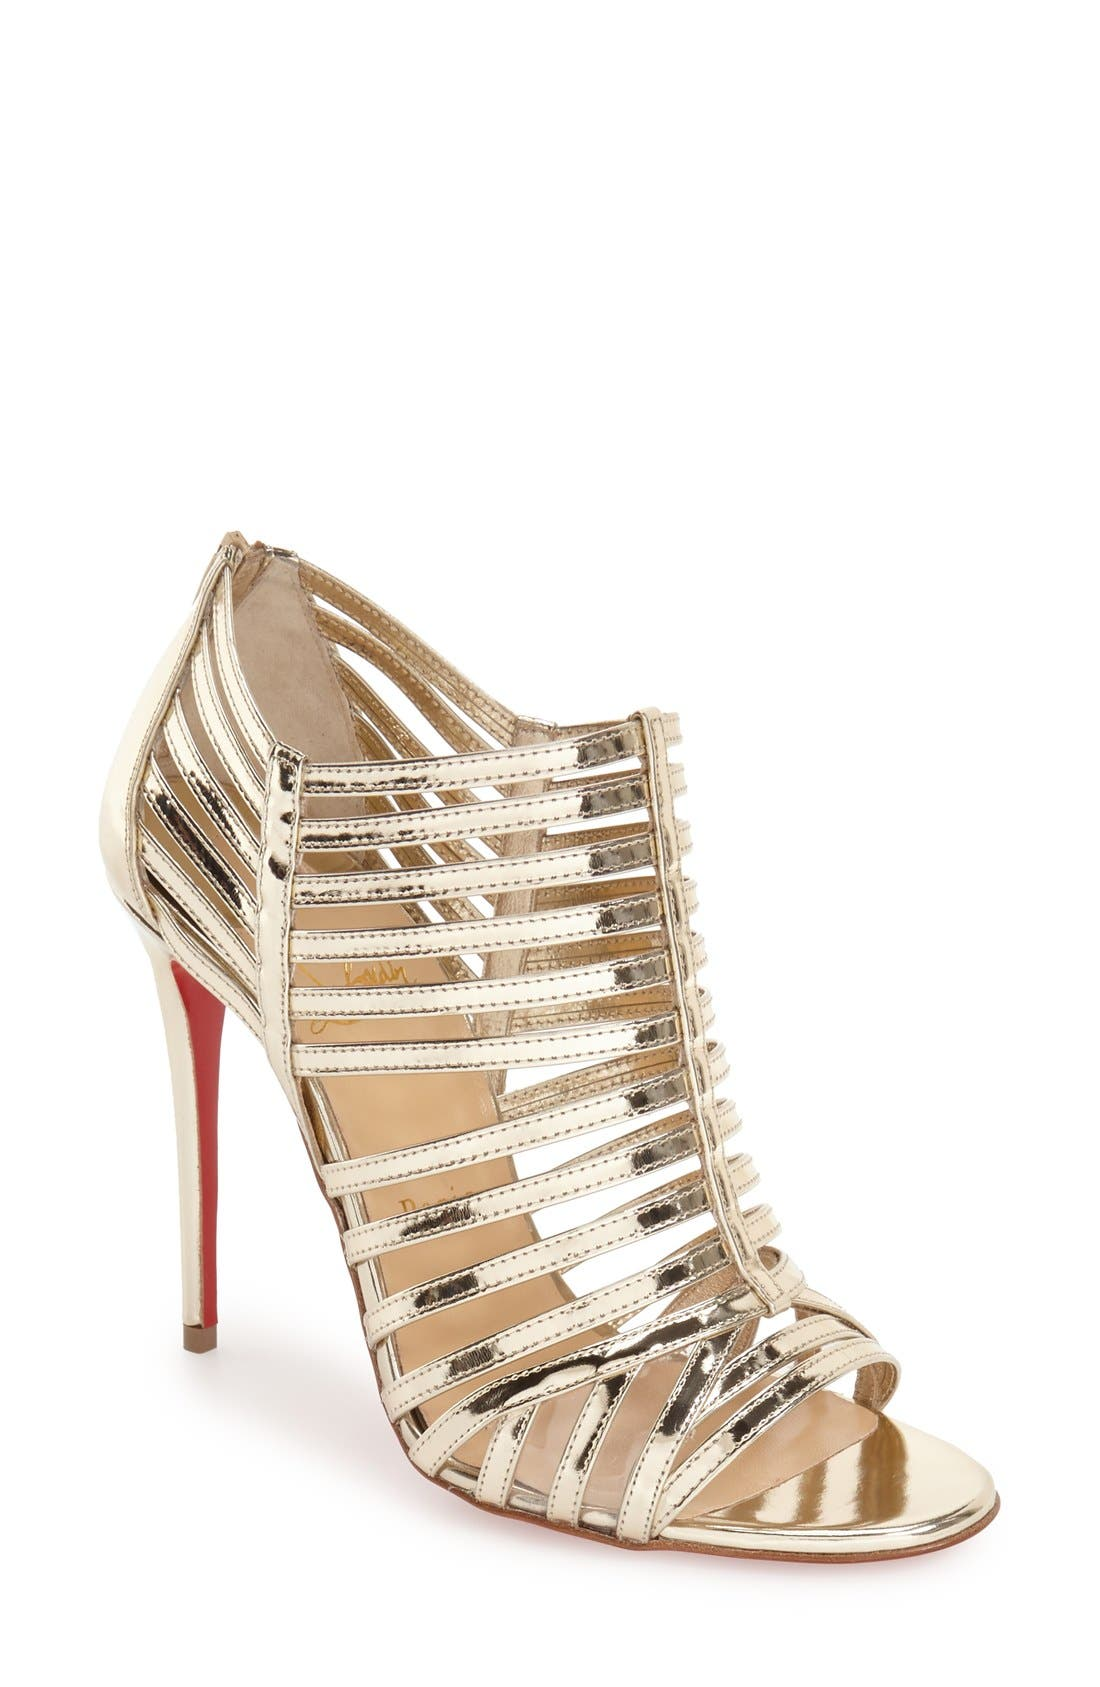 Main Image - Christian Louboutin 'City Jolly' Cage Sandal